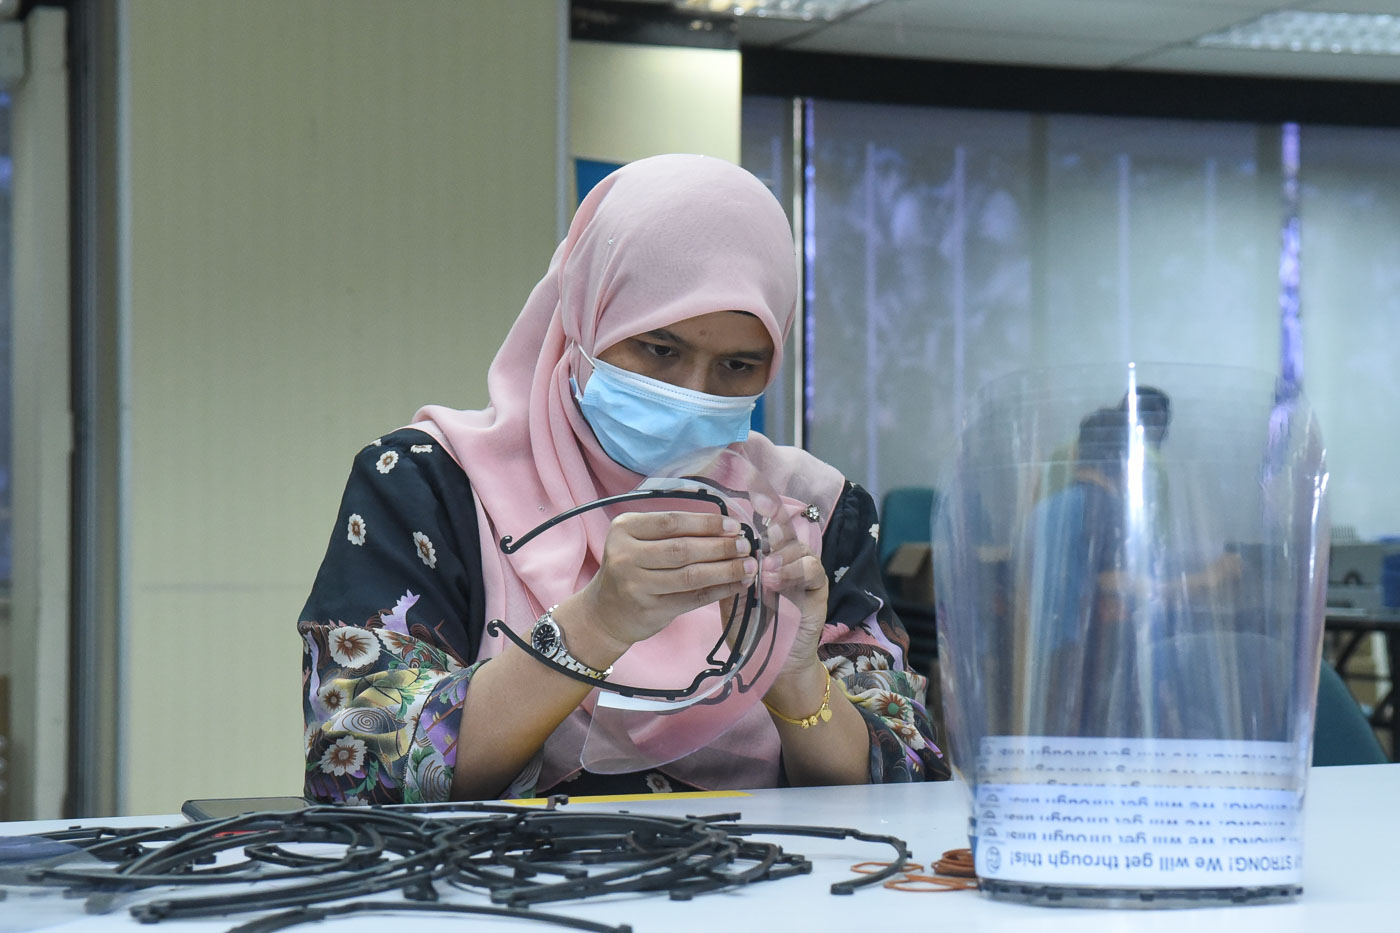 Proton volunteers manufacturing face shields